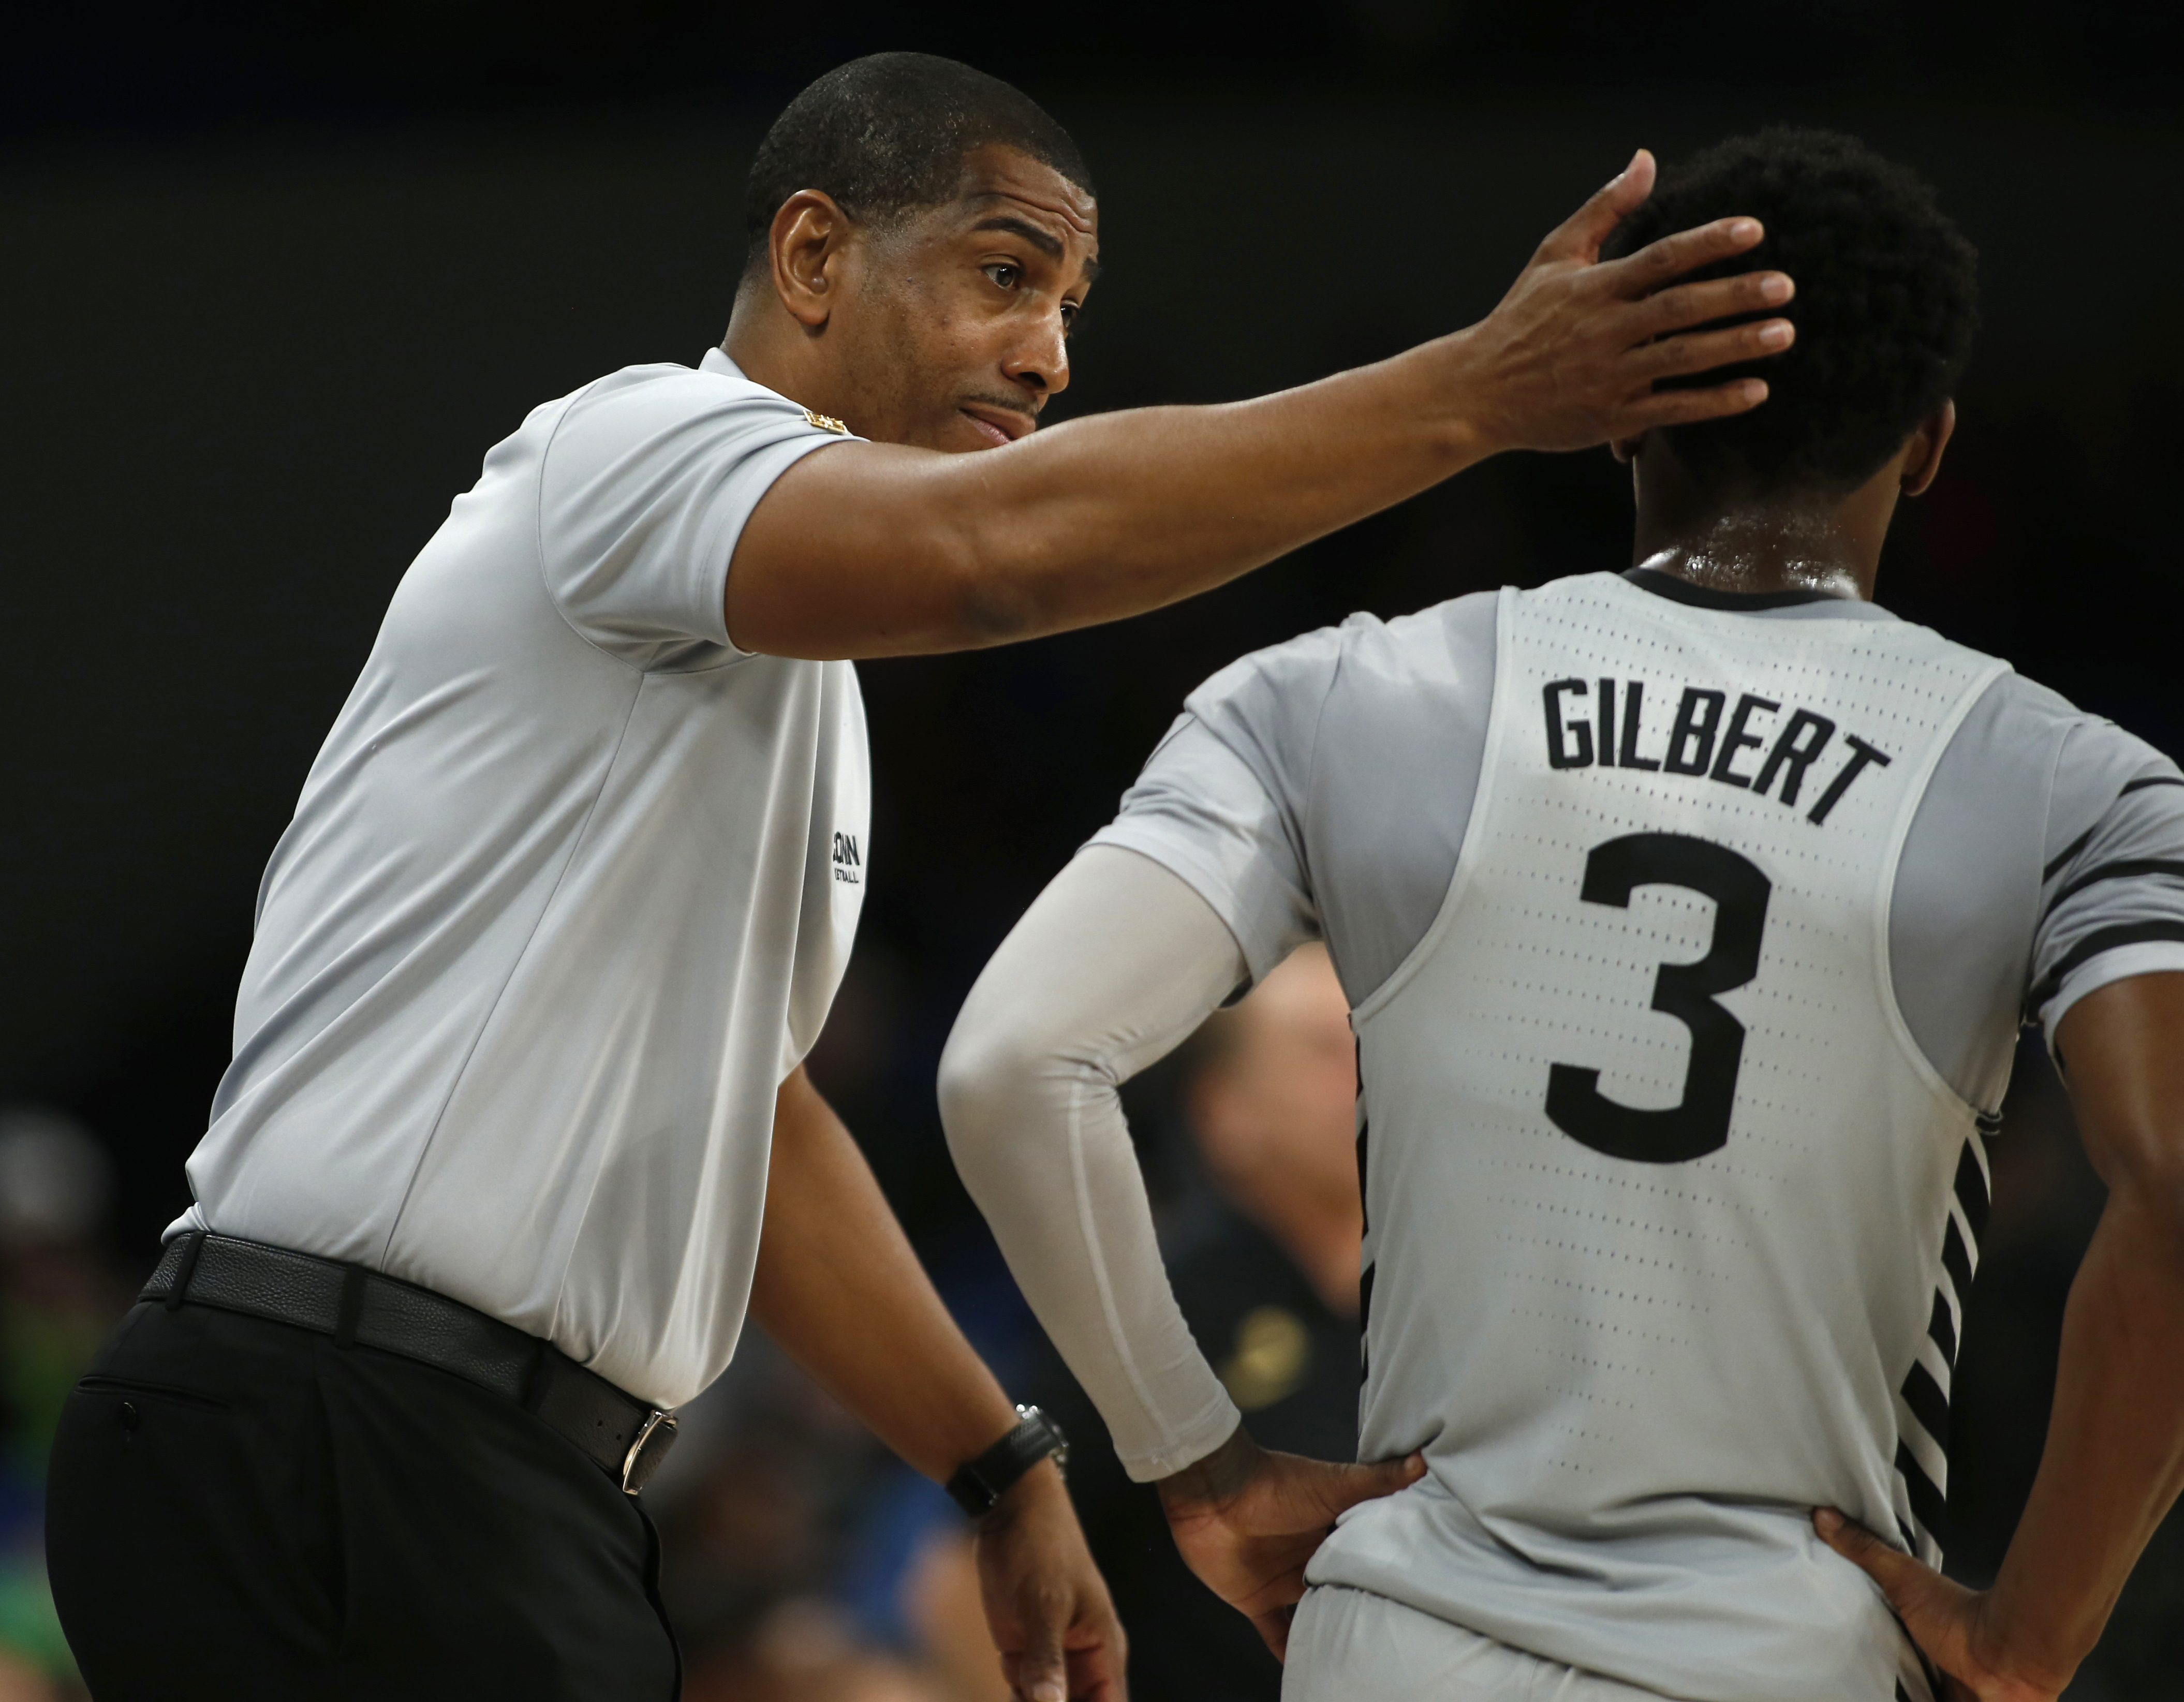 Kevin Ollie Alterique Gilbert